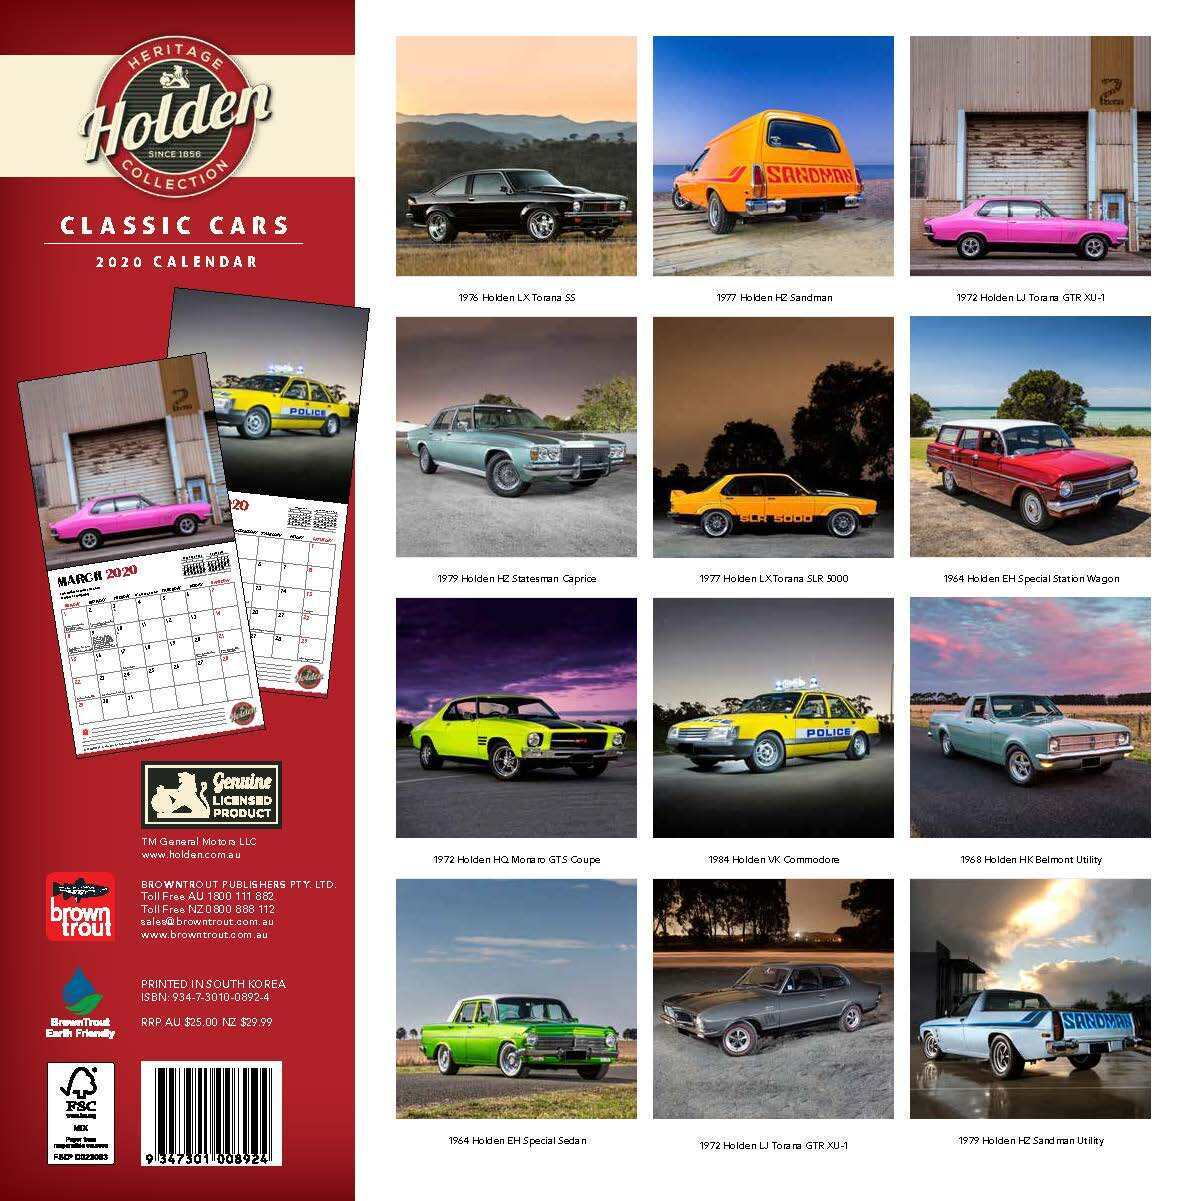 Classic Holden Cars 2020 Square Wall Calendar image